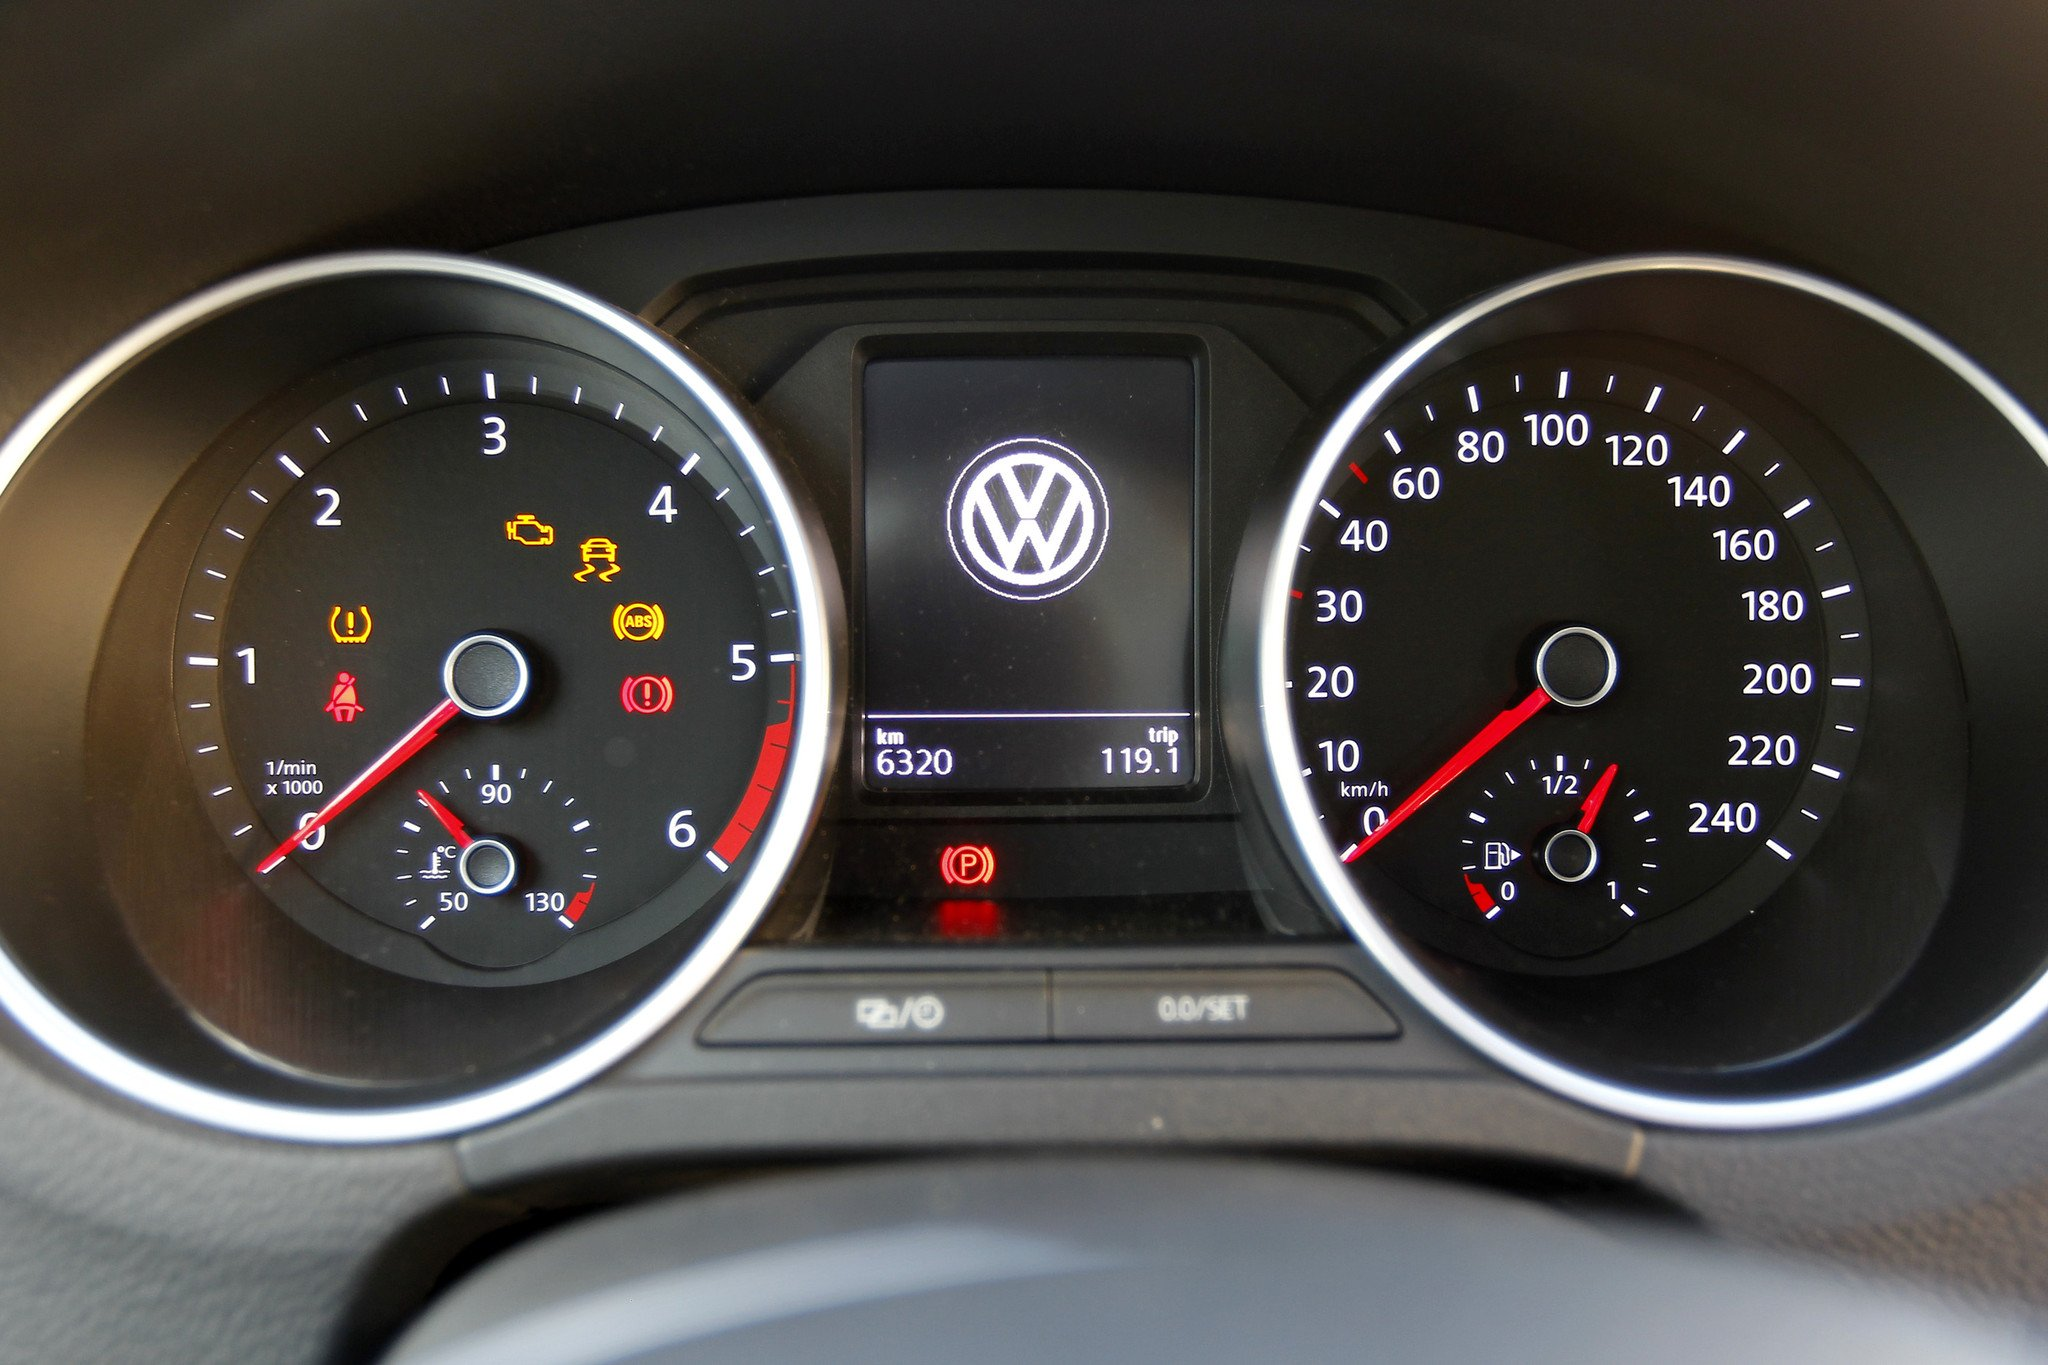 Prueba Volkswagen Polo Bluemotion 1 4 Tdi 191 90 Cv Son Suficientes